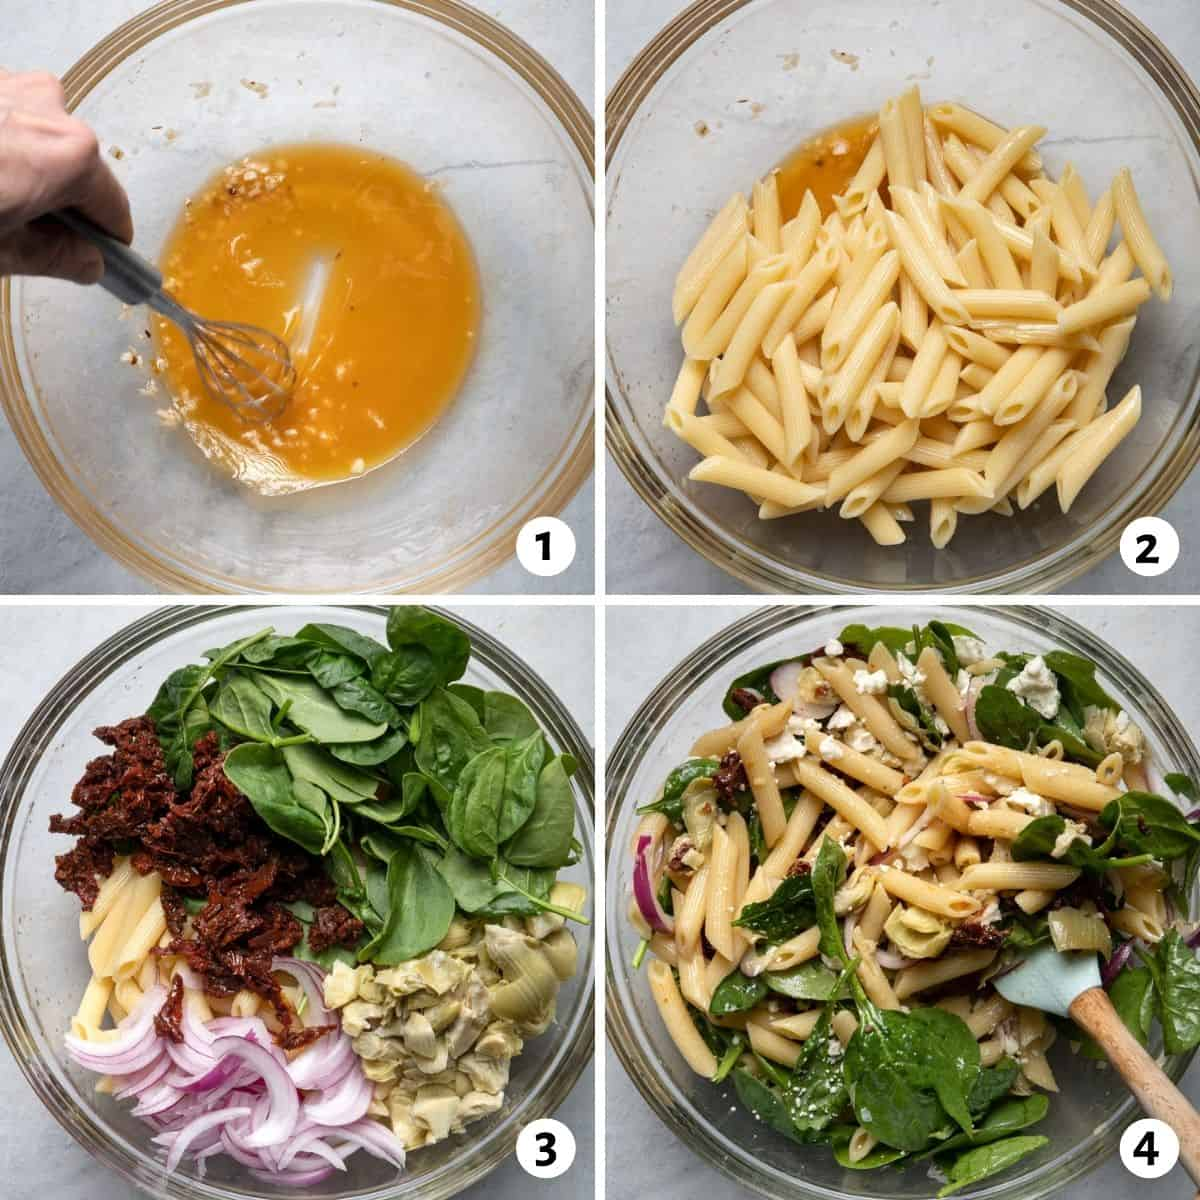 4 image collage to show how to make the pasta salad